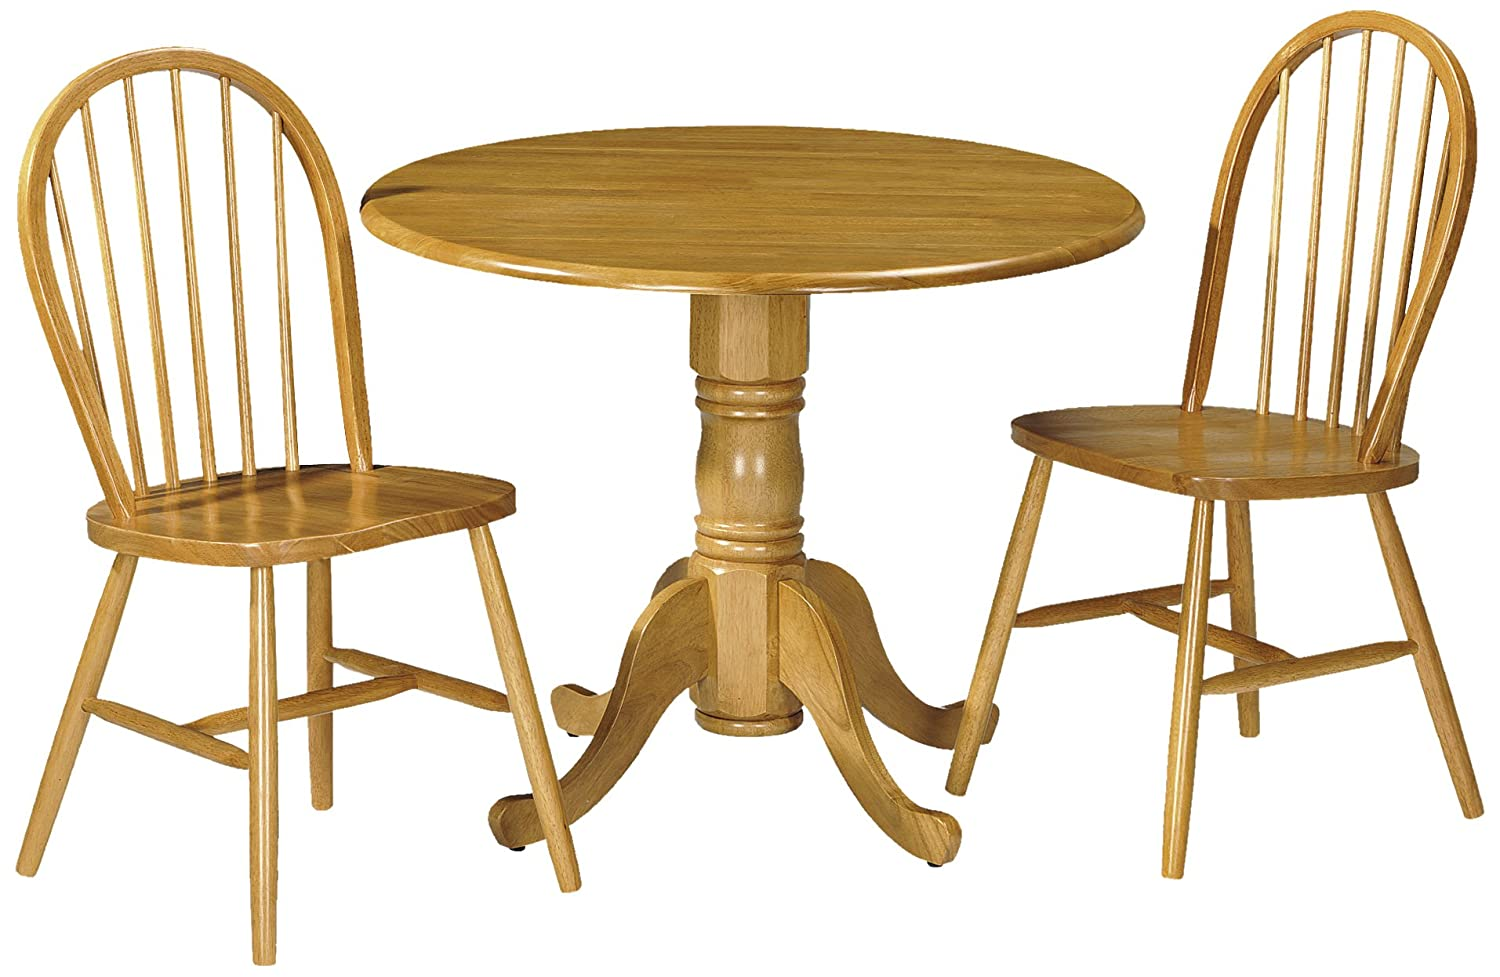 julian bowen dundee dropleaf table set with 2 windsor dining chairs honey pine finish amazoncouk kitchen u0026 home